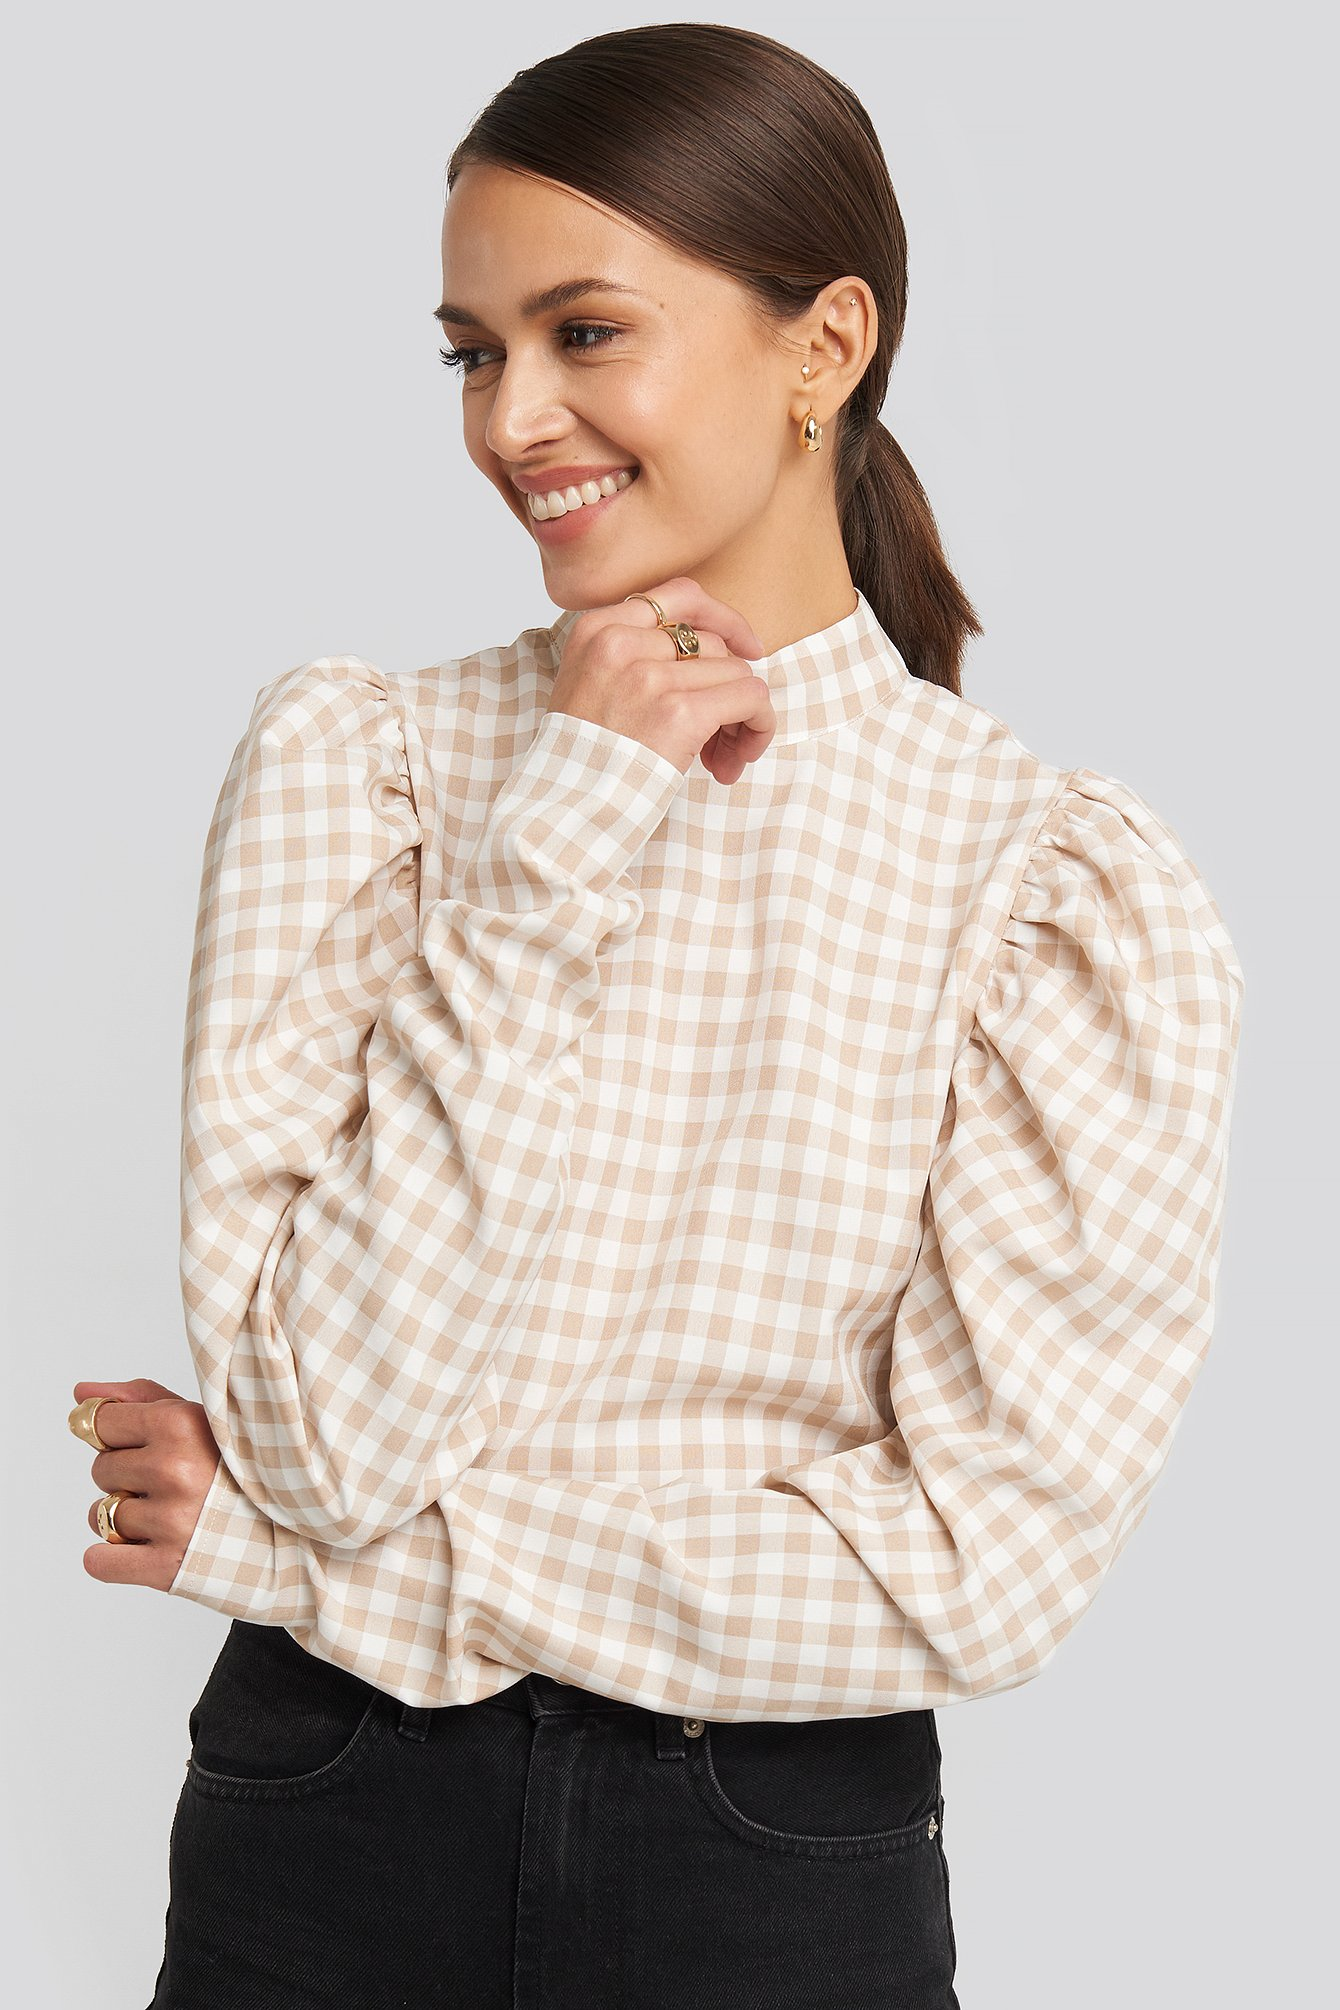 NA-KD Boho High Collar Checked Blouse - White,Beige